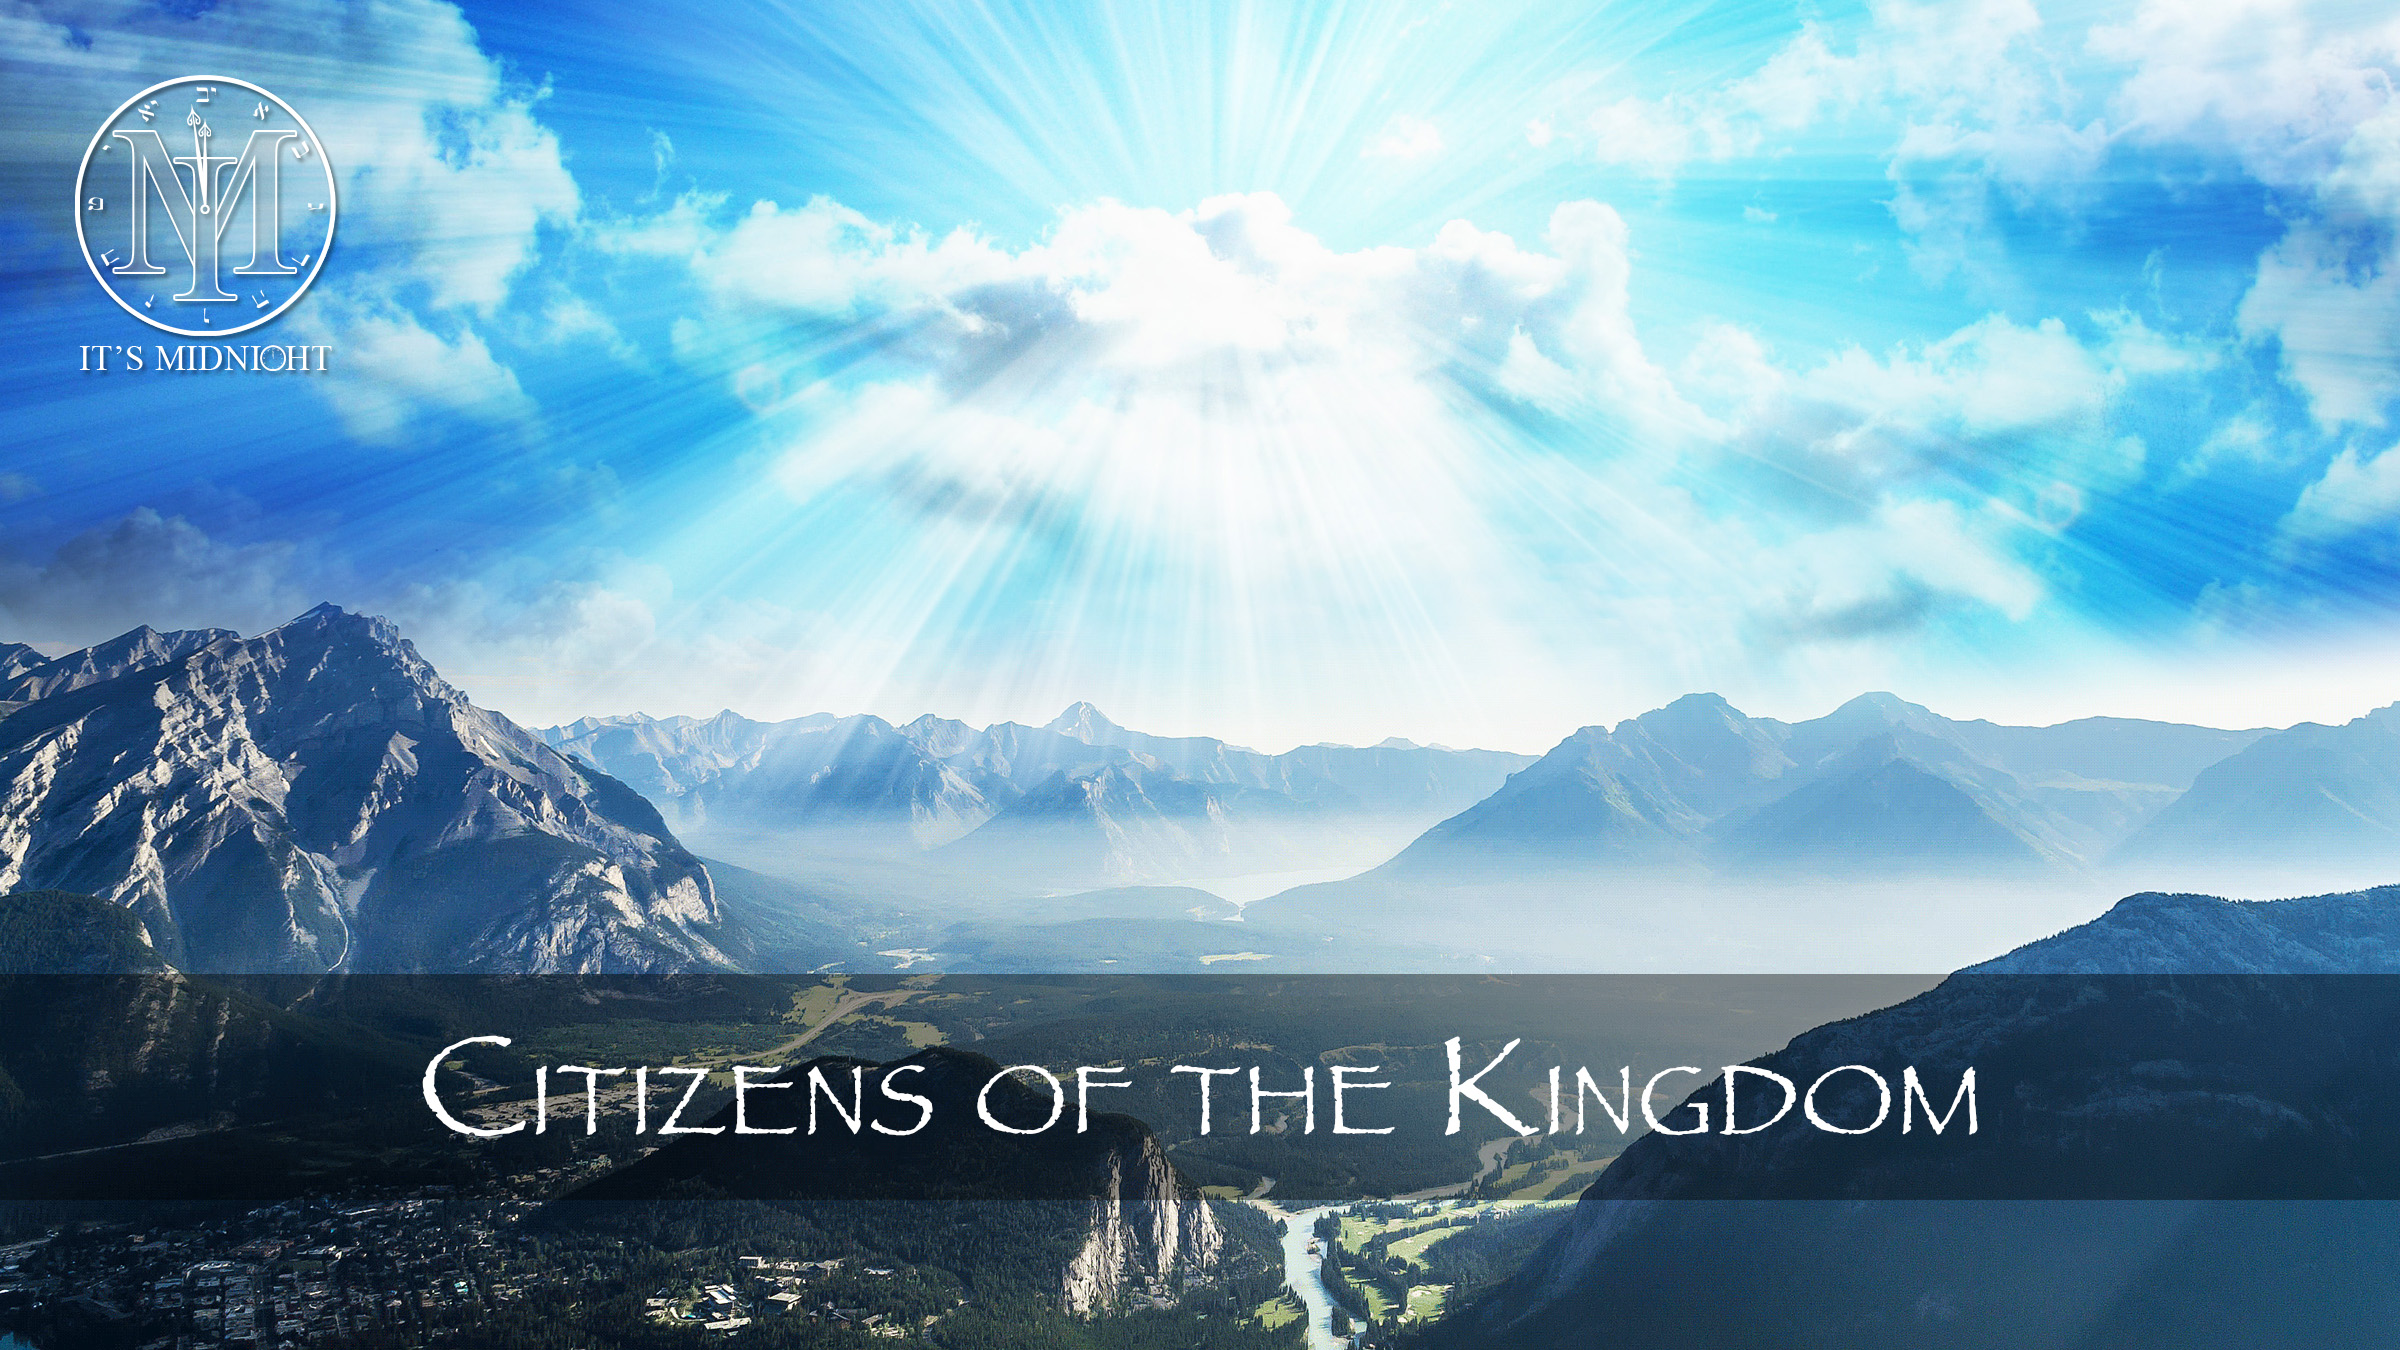 Citizens of the Kingdom Thumbnail.jpg